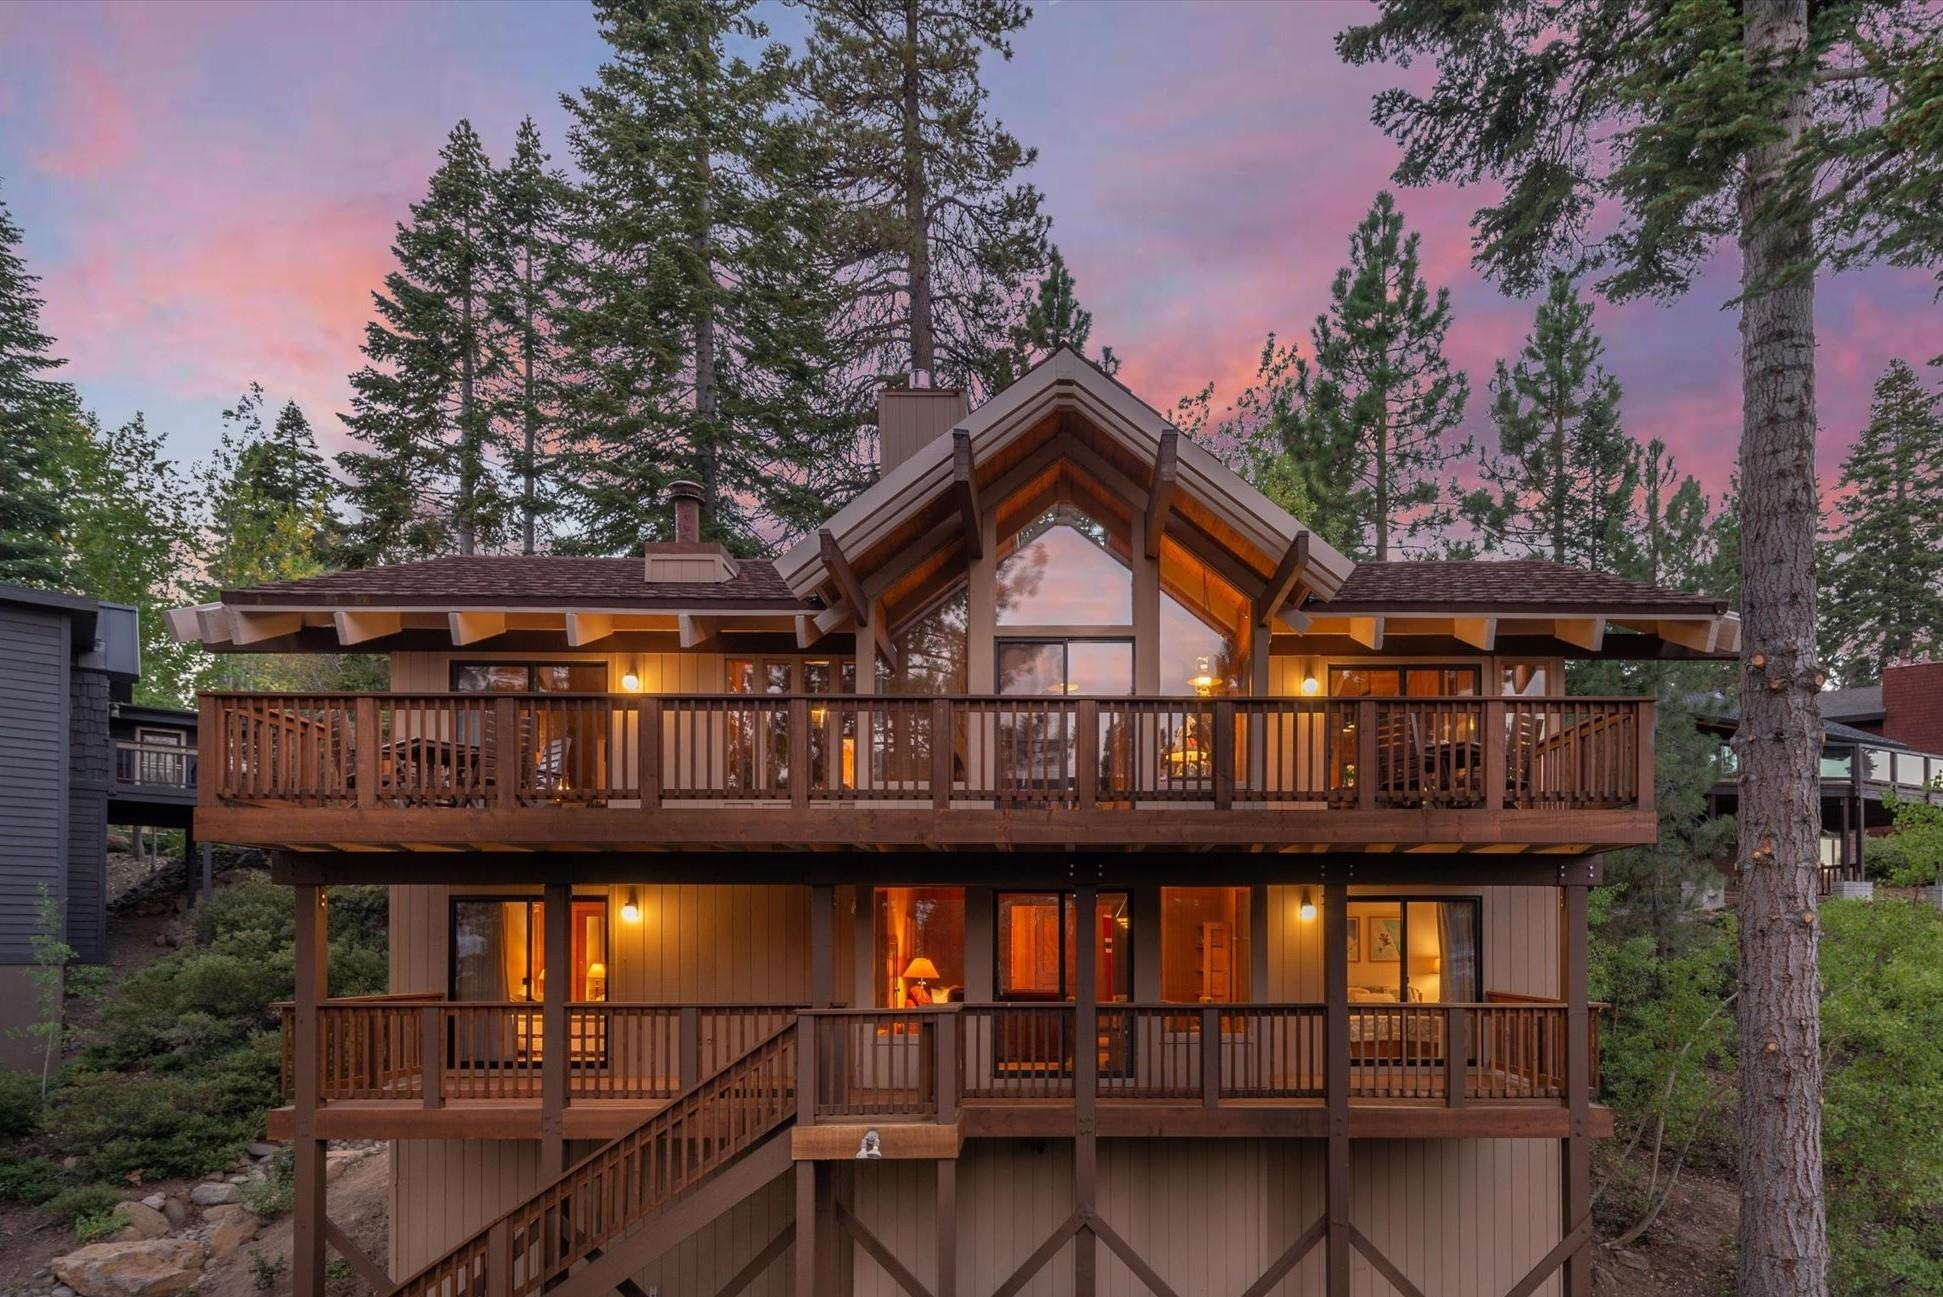 Image for 304 Edgecliff Way, Tahoe City, CA 96145